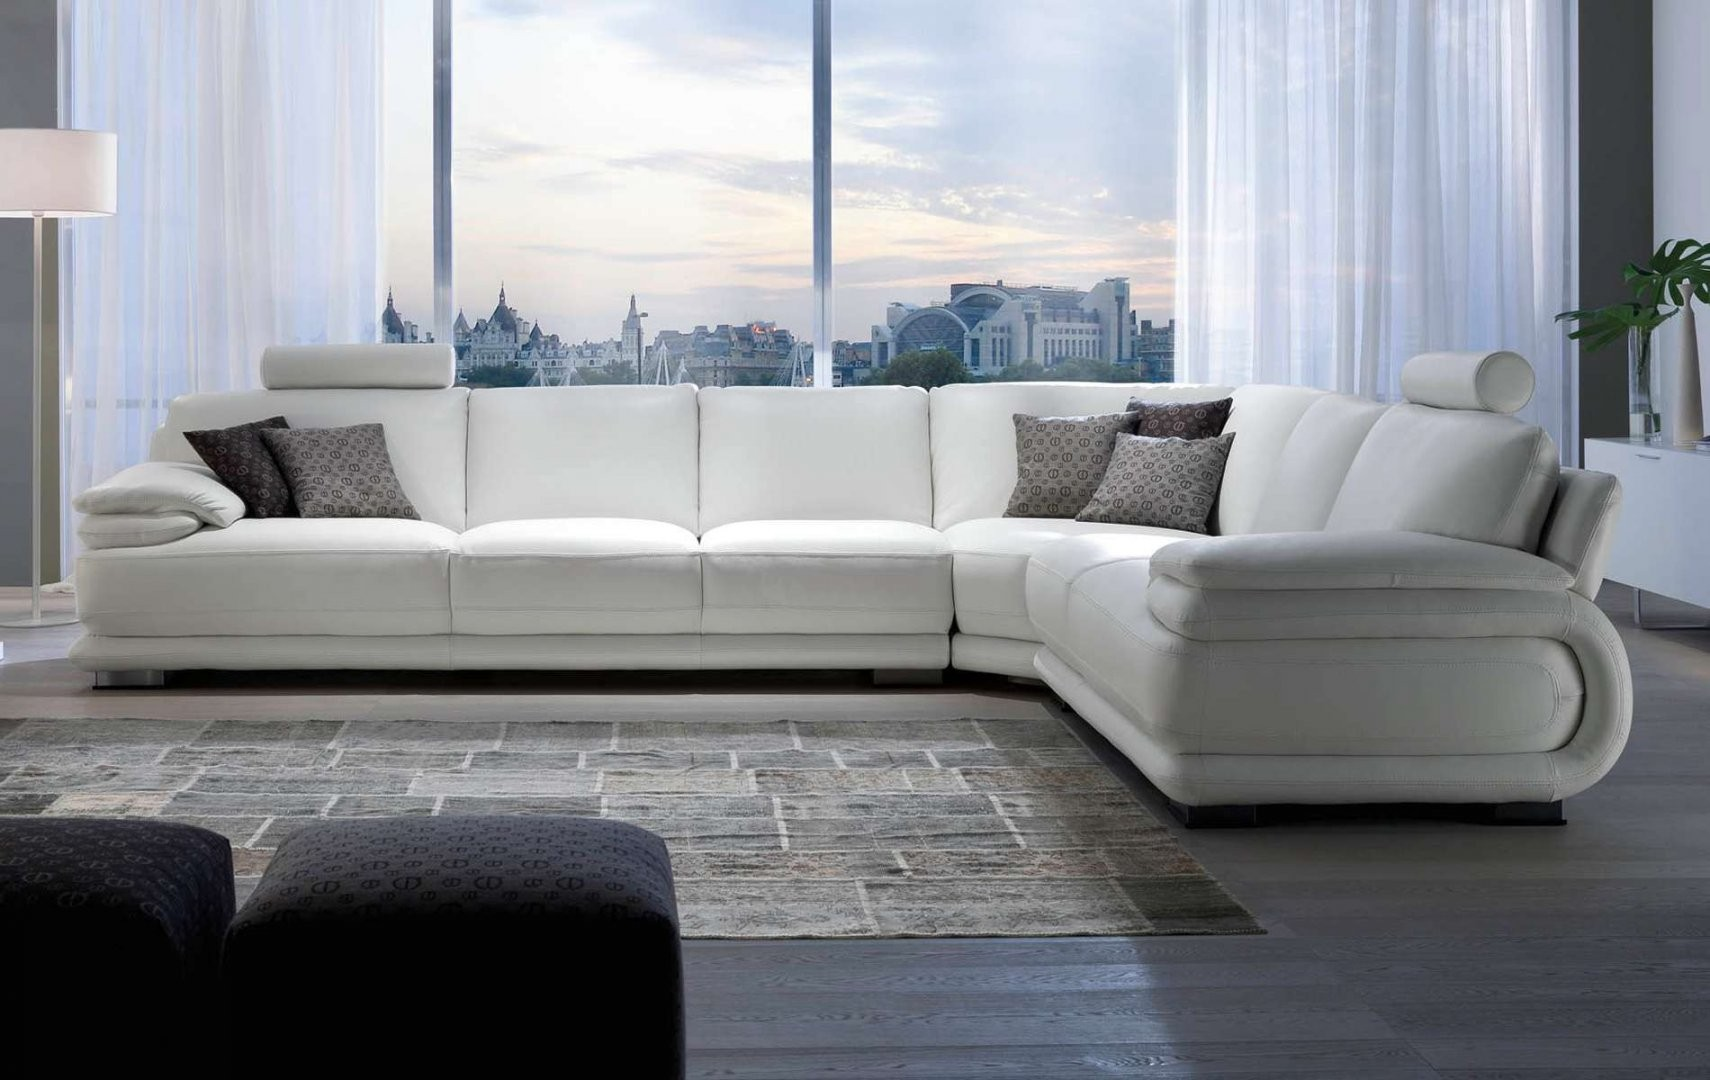 Fantastic Atlantic Leather Sectional By Chateau Dax Italia Available Caraccident5 Cool Chair Designs And Ideas Caraccident5Info